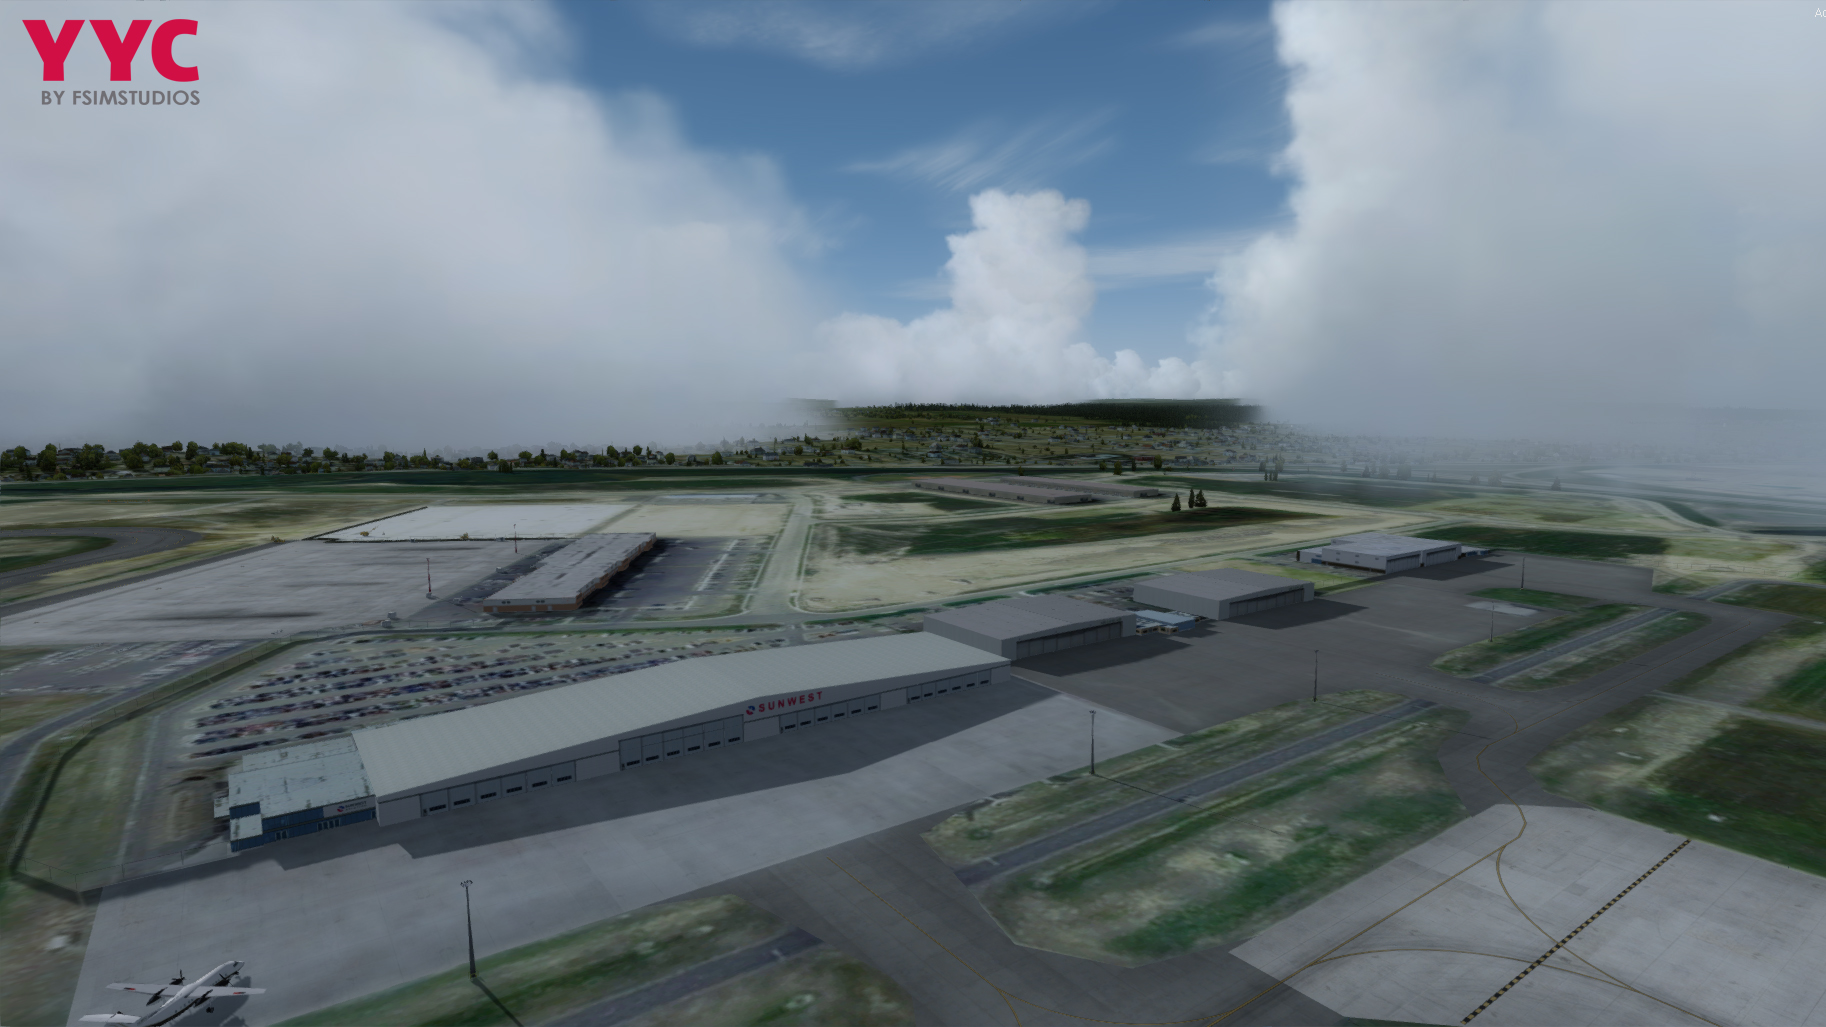 FSIMSTUDIOS - CALGARY INTERNATIONAL AIRPORT CYYC FSX P3D